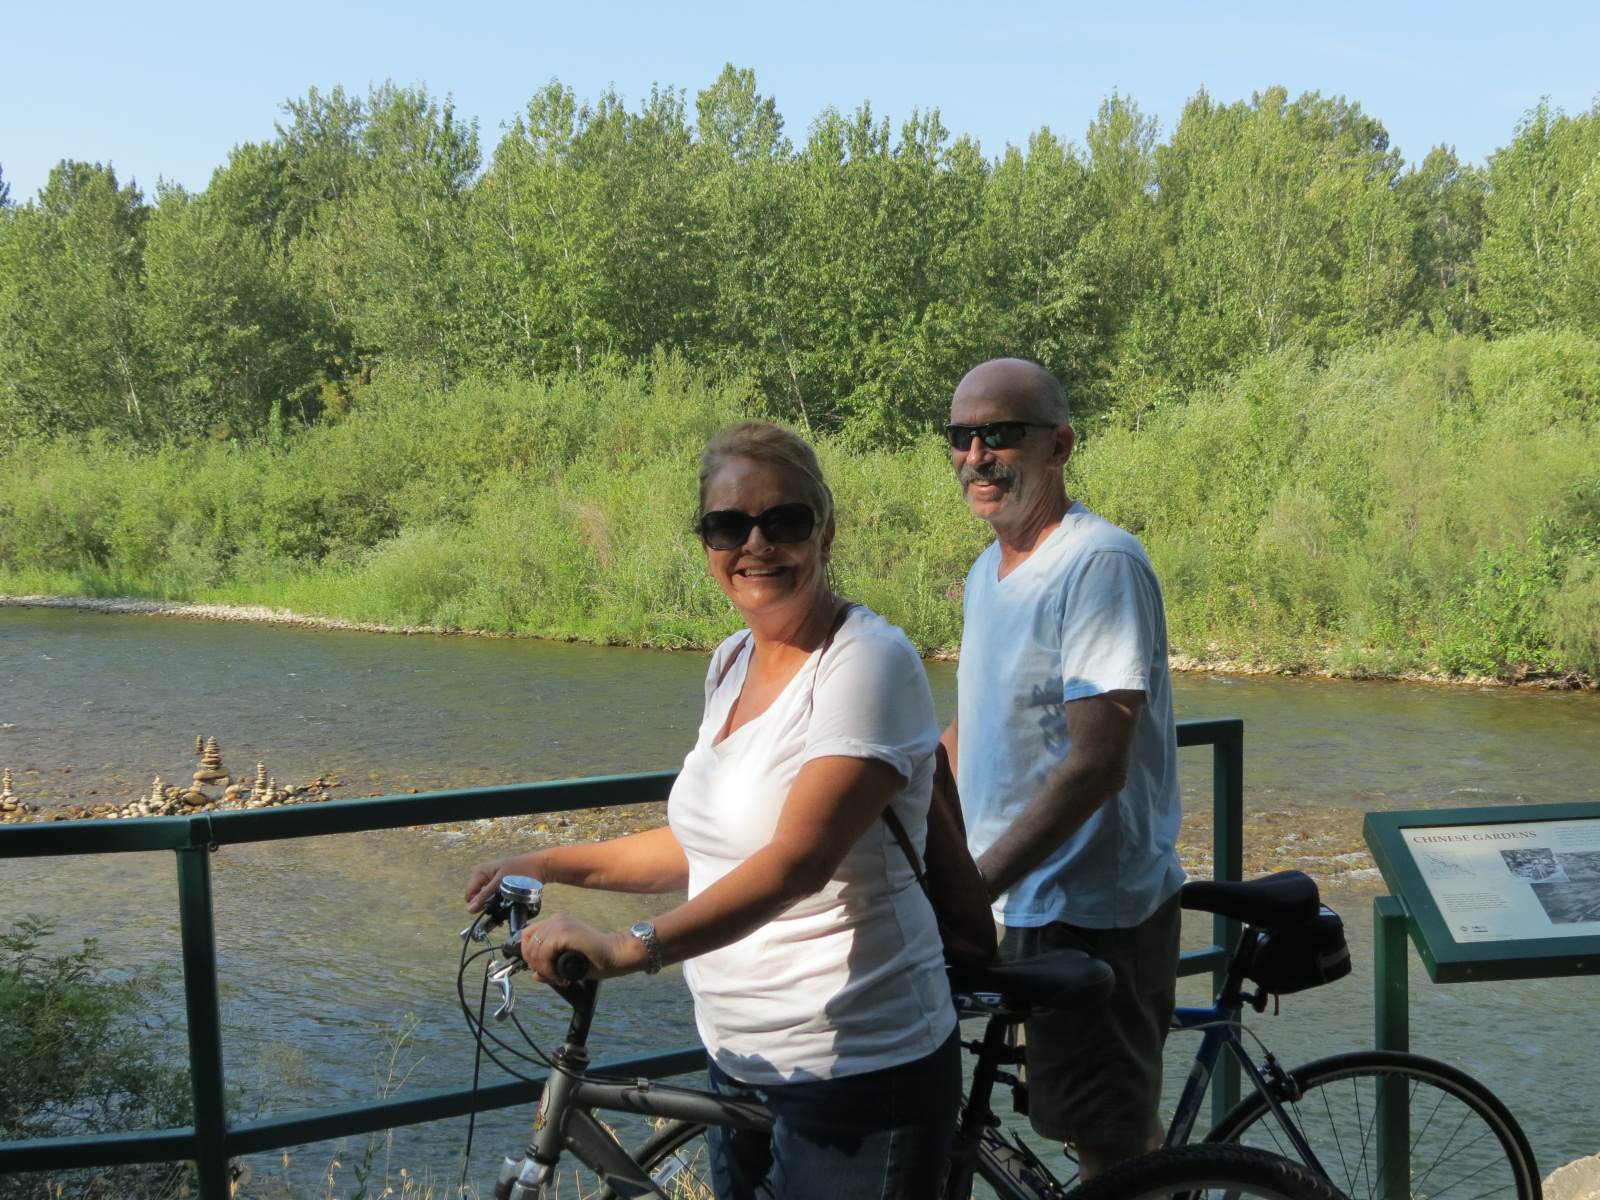 Tina & Bill biking on the Greenbelt in Boise